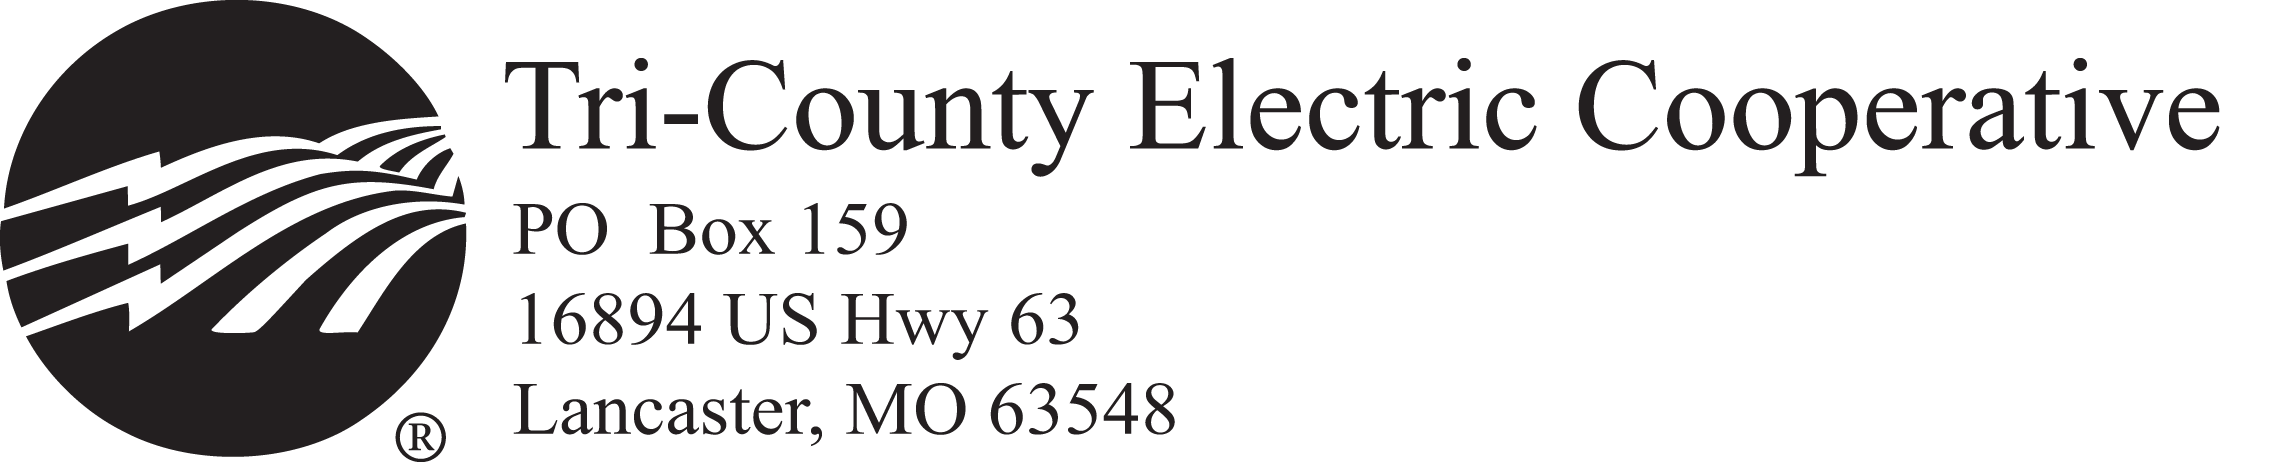 TriCounty Electric